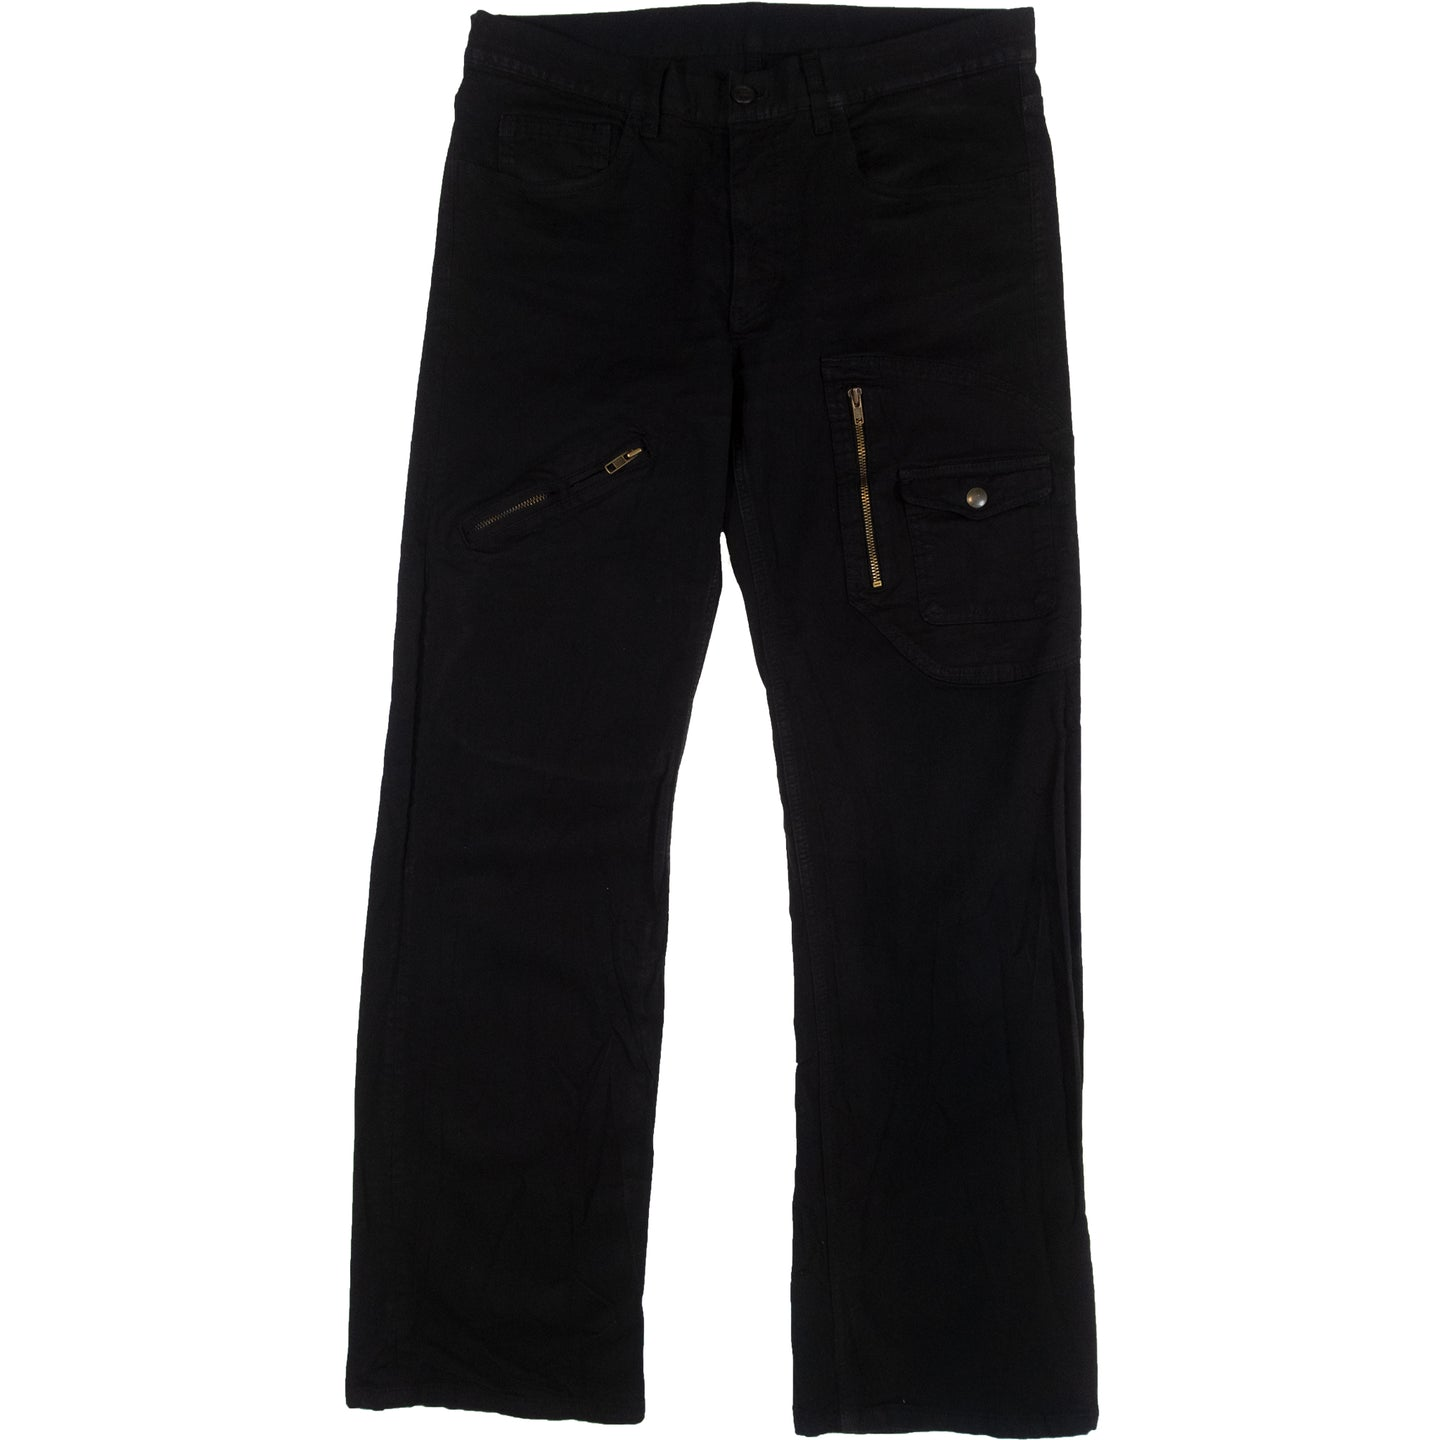 Comme Des Garcons Black Trousers <Br> Size Small